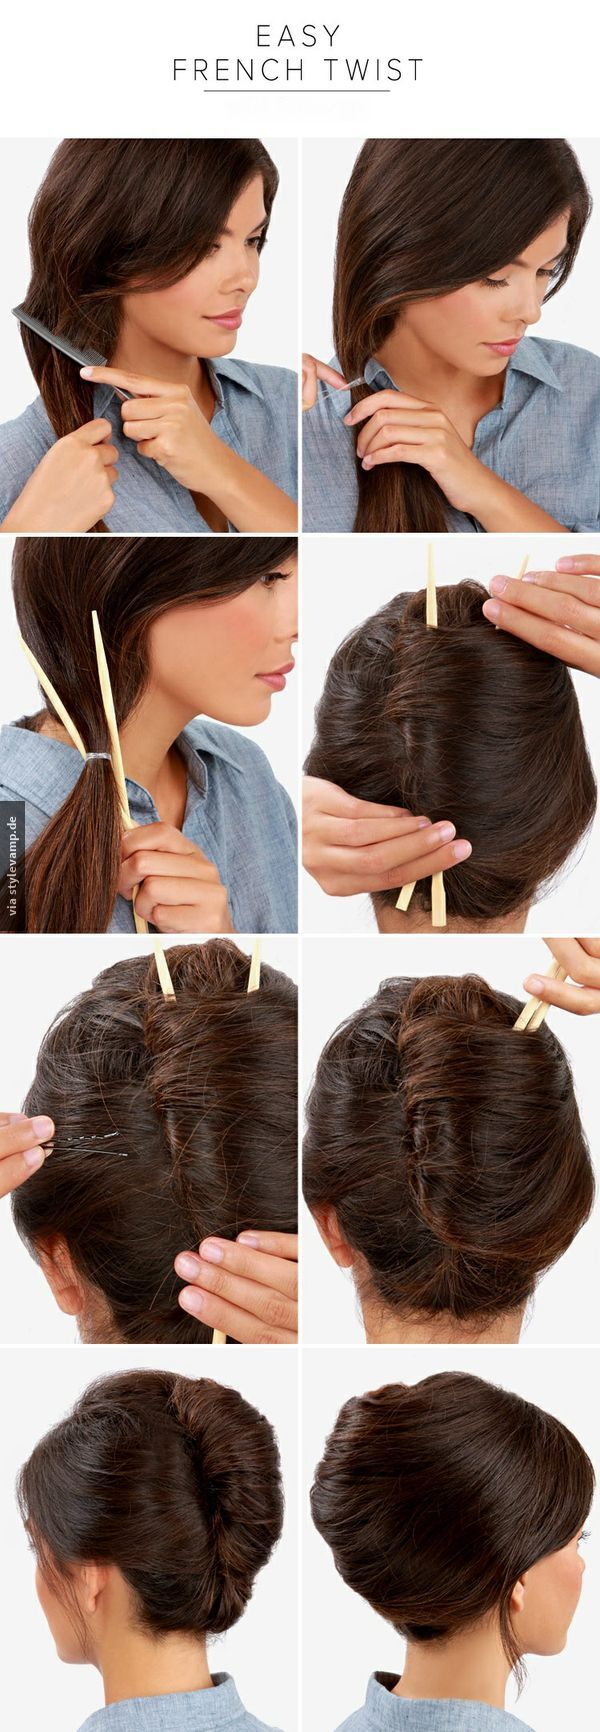 best lange bobs images on pinterest hairstyles hair and braids